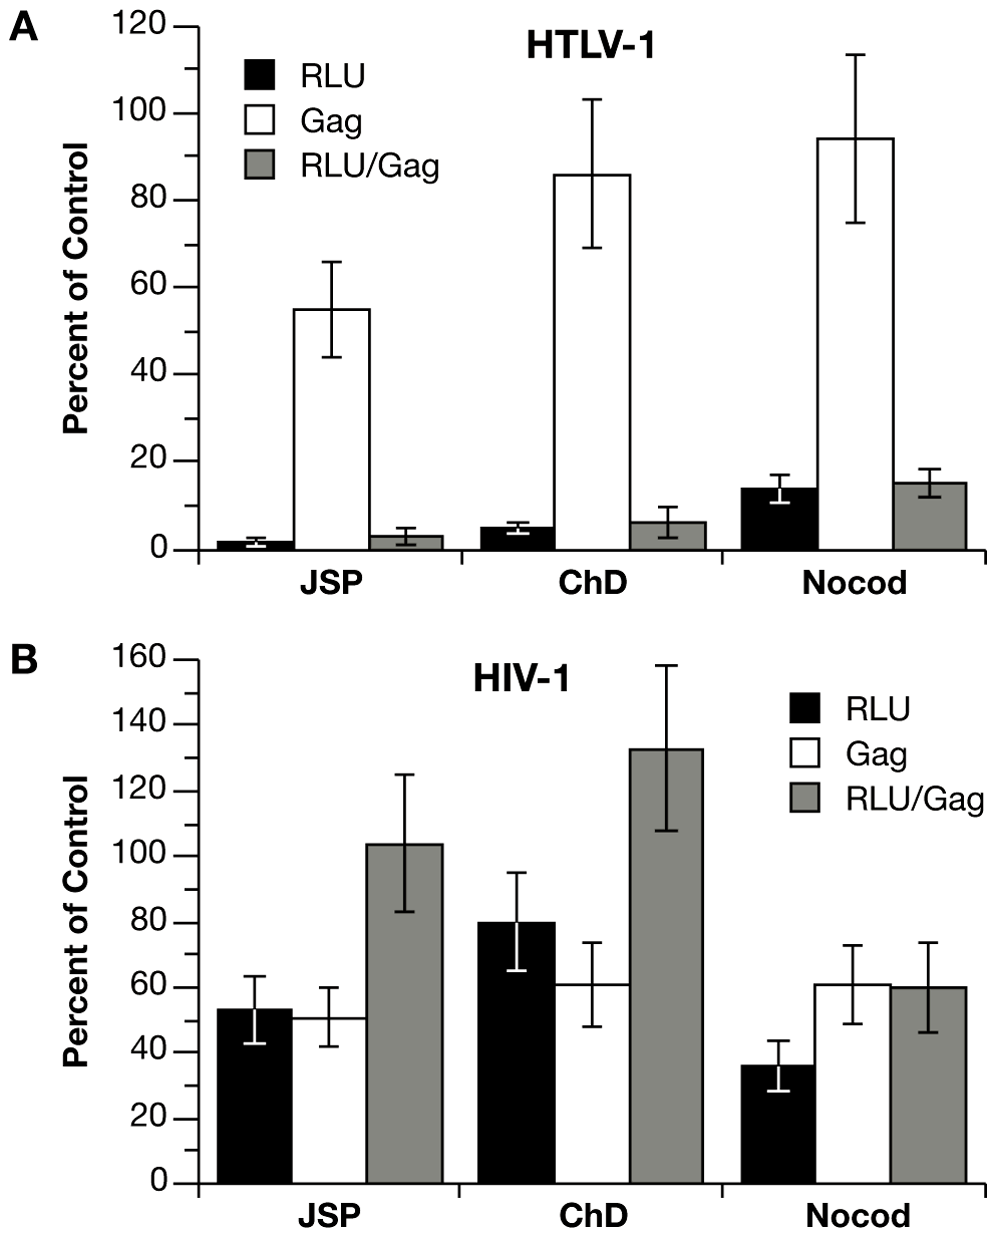 Effects of cytoskeleton disrupting agents on coculture infection with HTLV-1 and HIV-1 vectors.